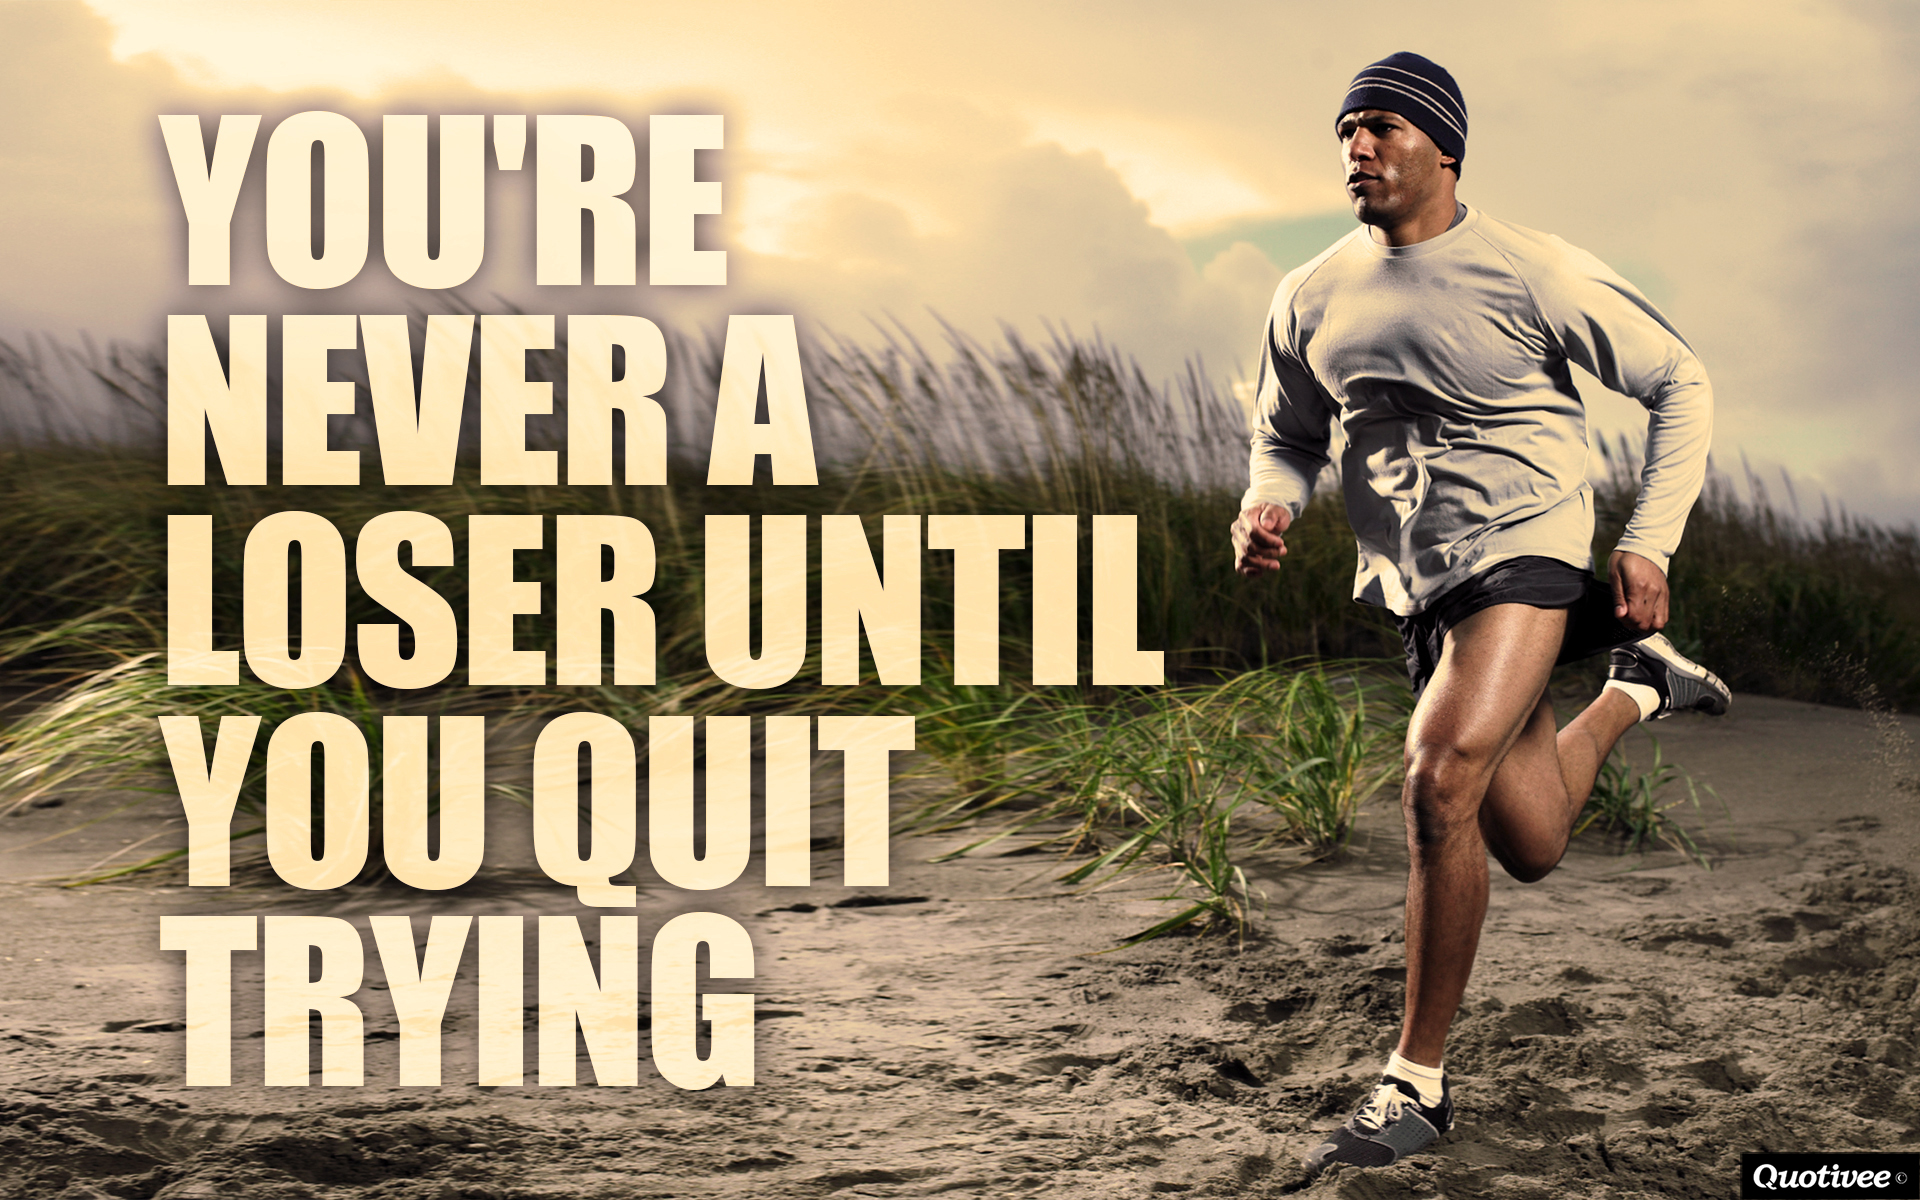 Fall Mobile Wallpaper You Re Never A Loser Until You Quit Trying Inspirational